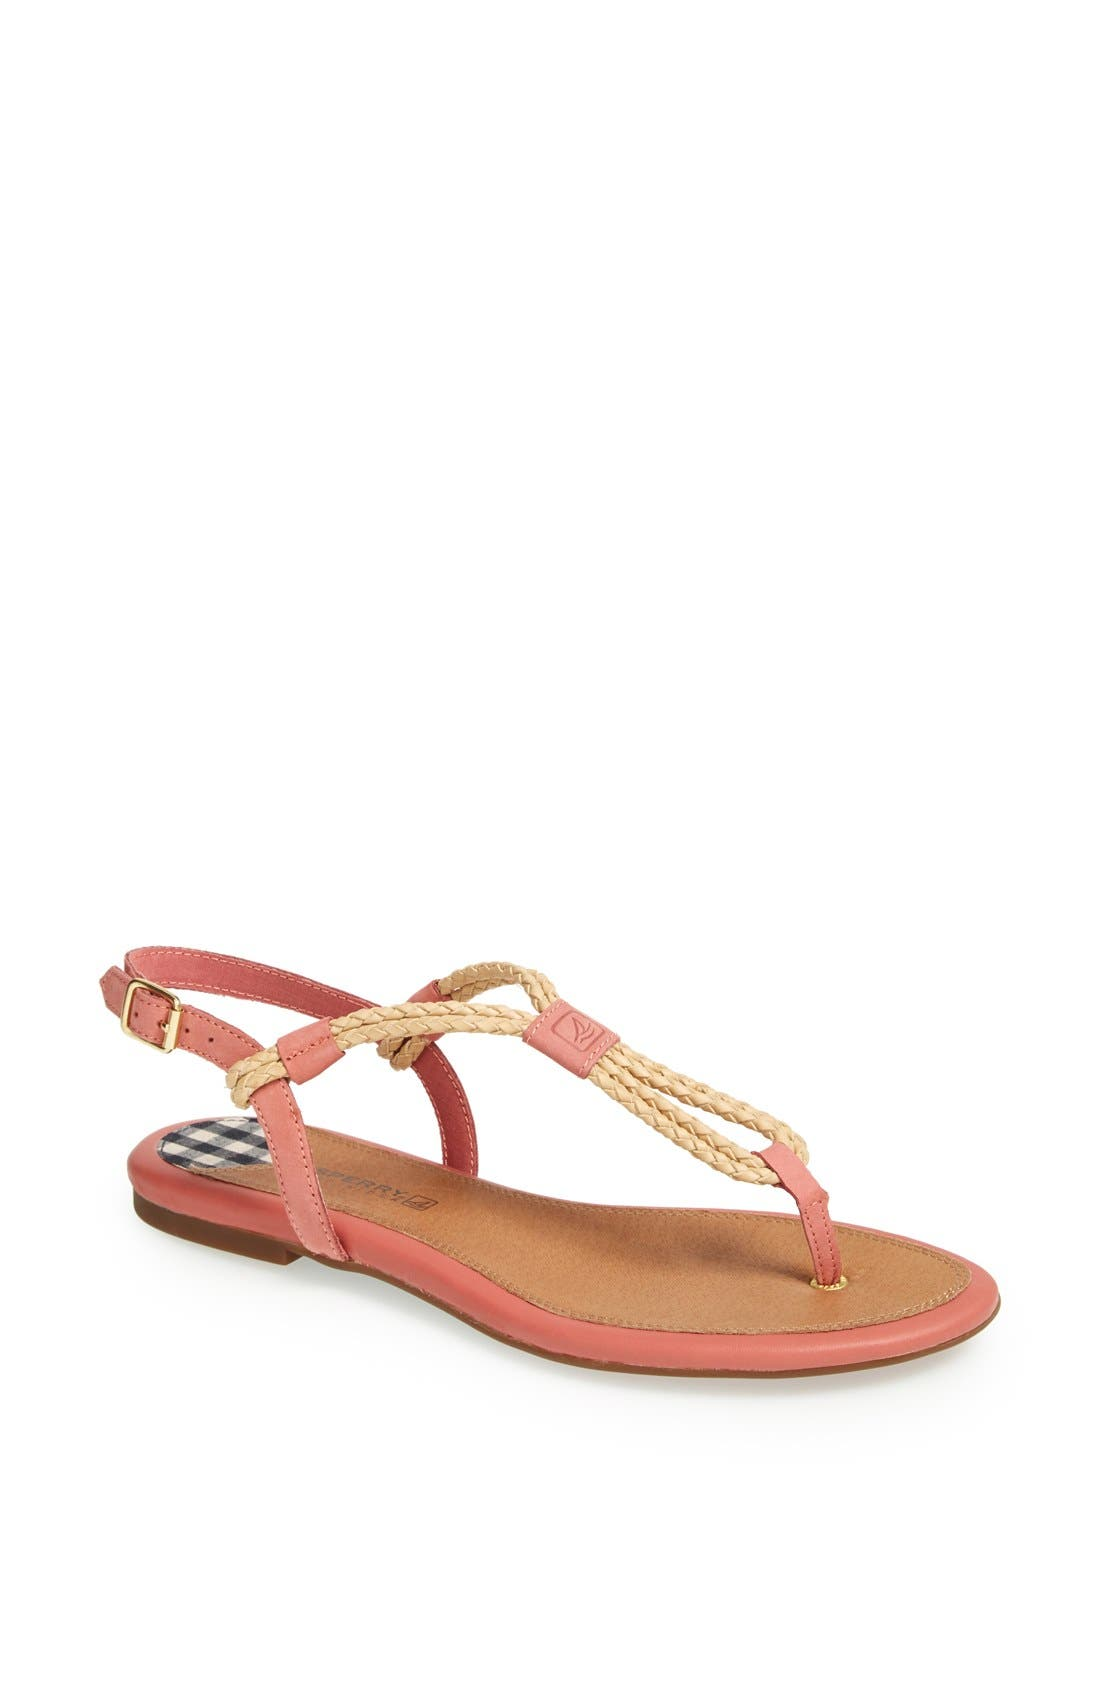 Alternate Image 1 Selected - Sperry Top-Sider® 'Lacie' Sandal